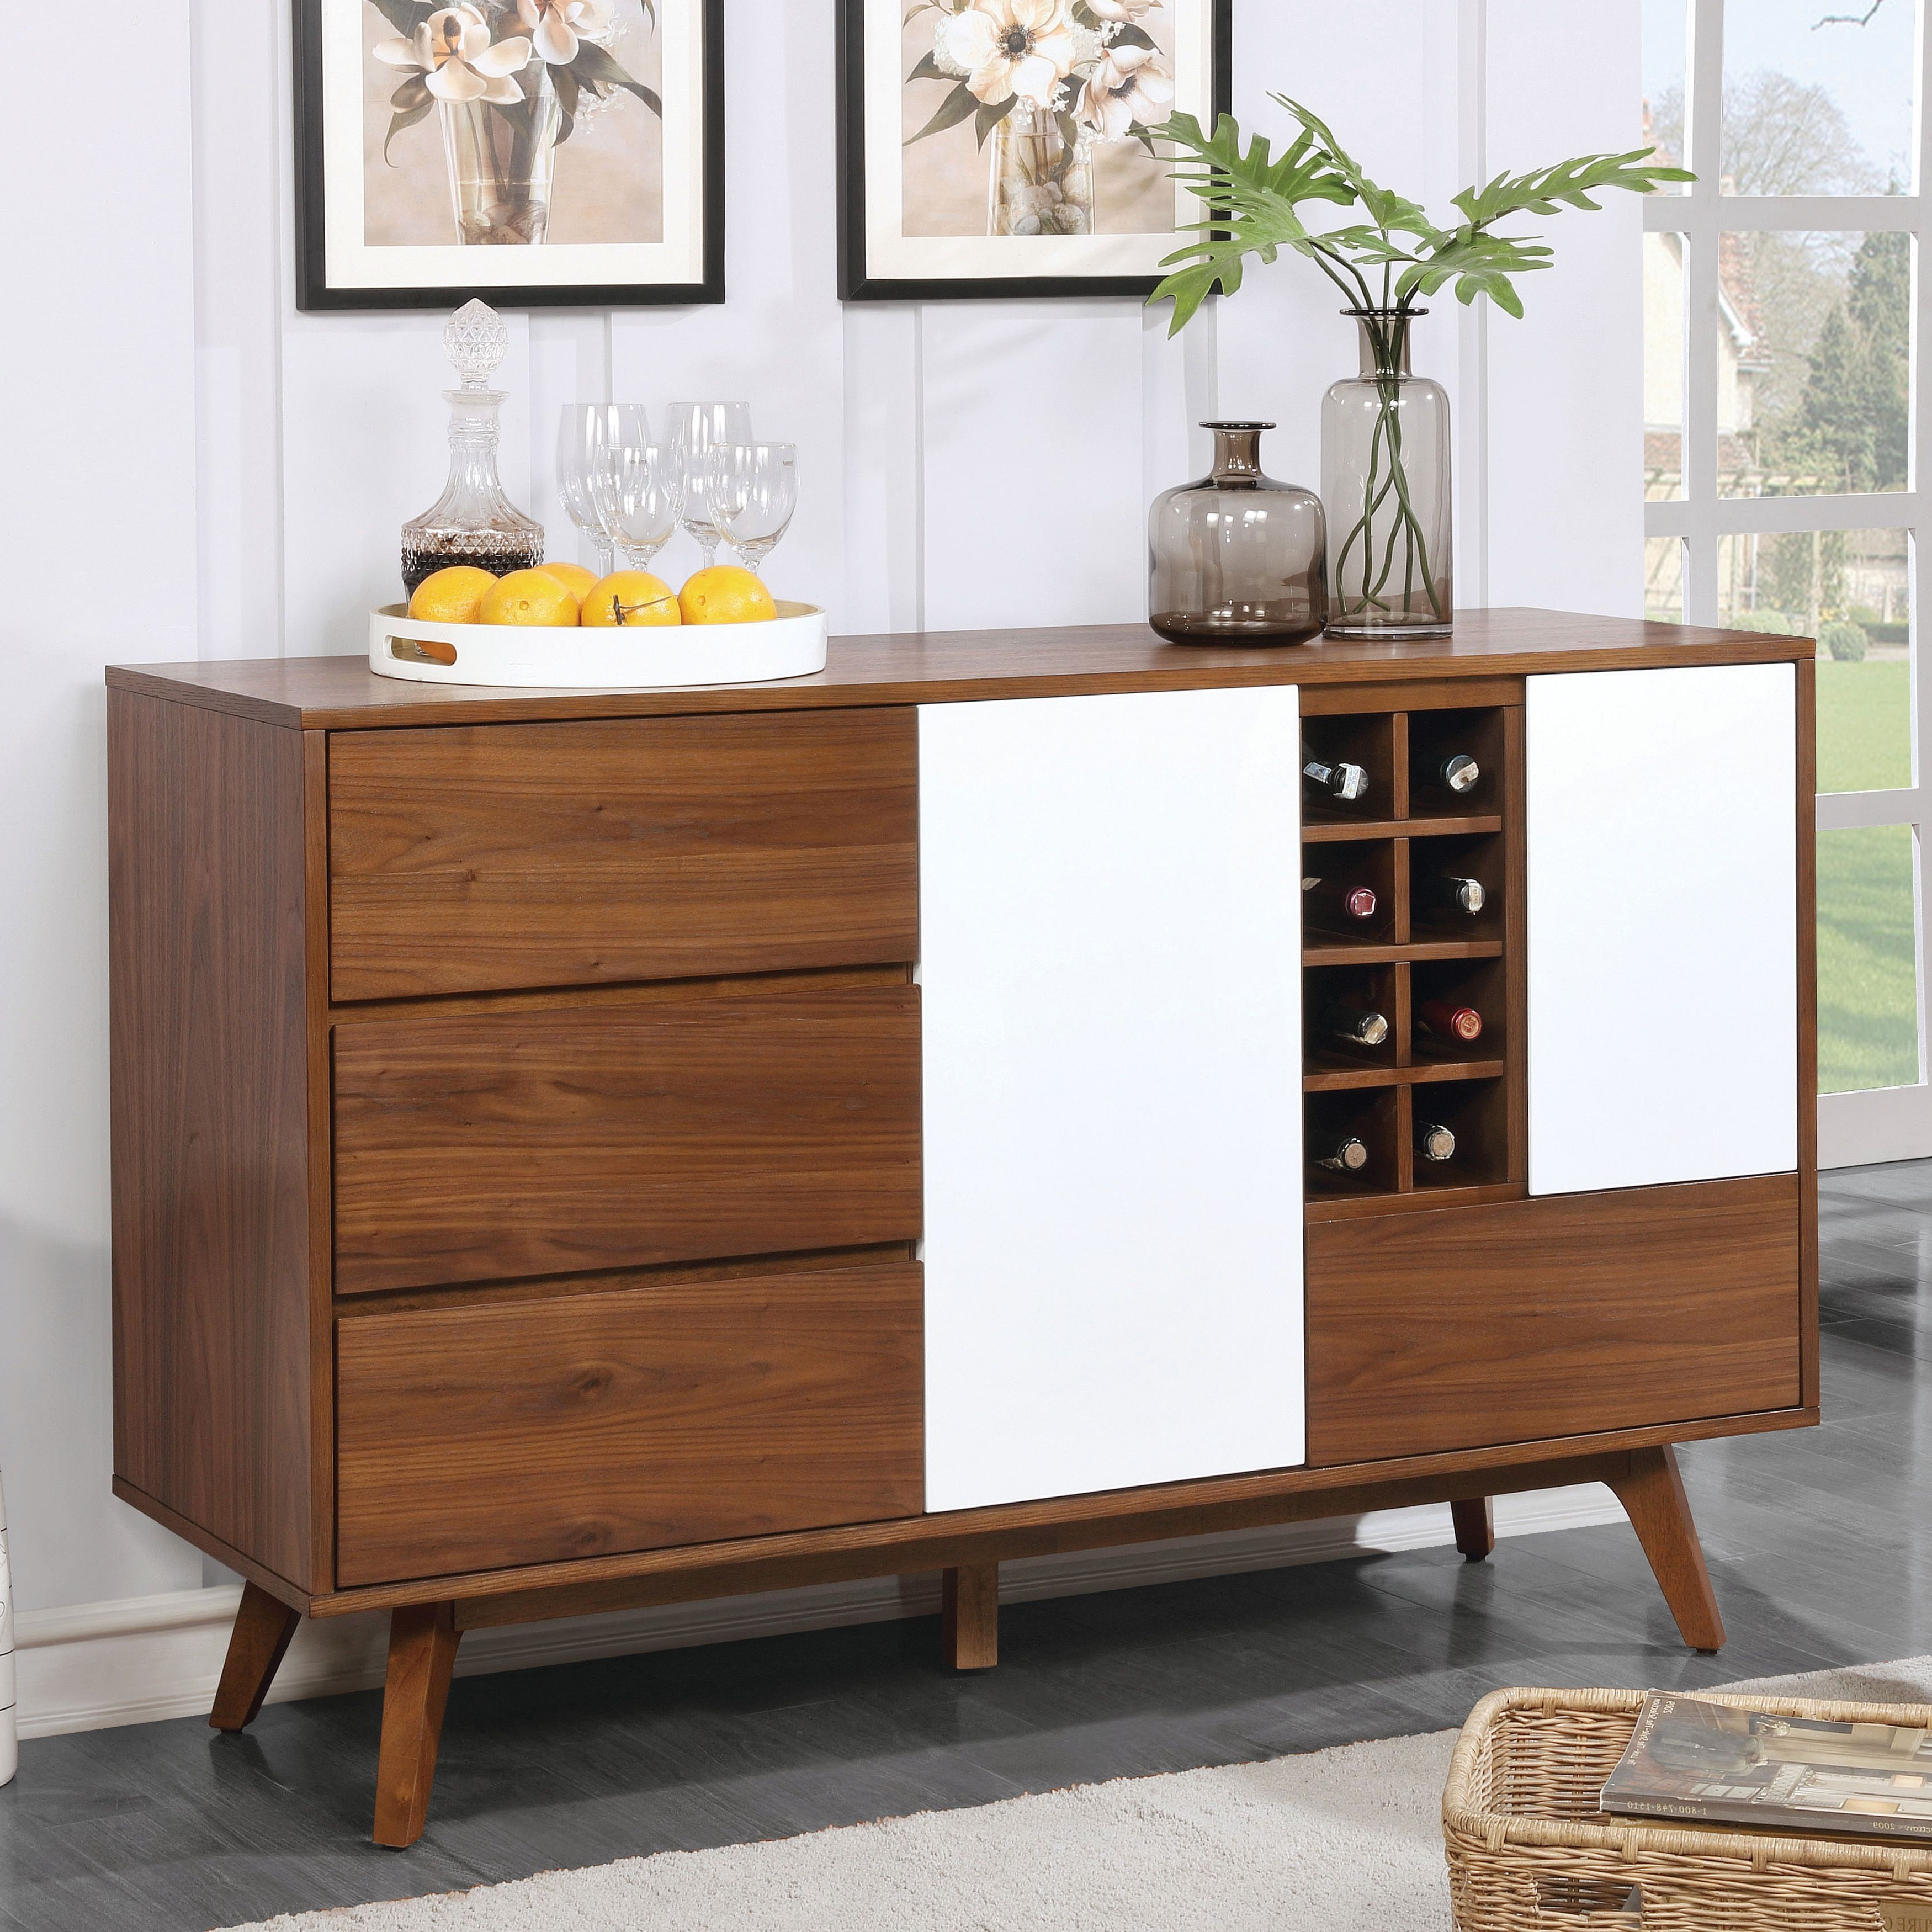 Furniture Of America Liman Mid Century Modern 2 Tone Oak Inside Contemporary Style Wooden Buffets With Two Side Door Storage Cabinets (View 10 of 20)